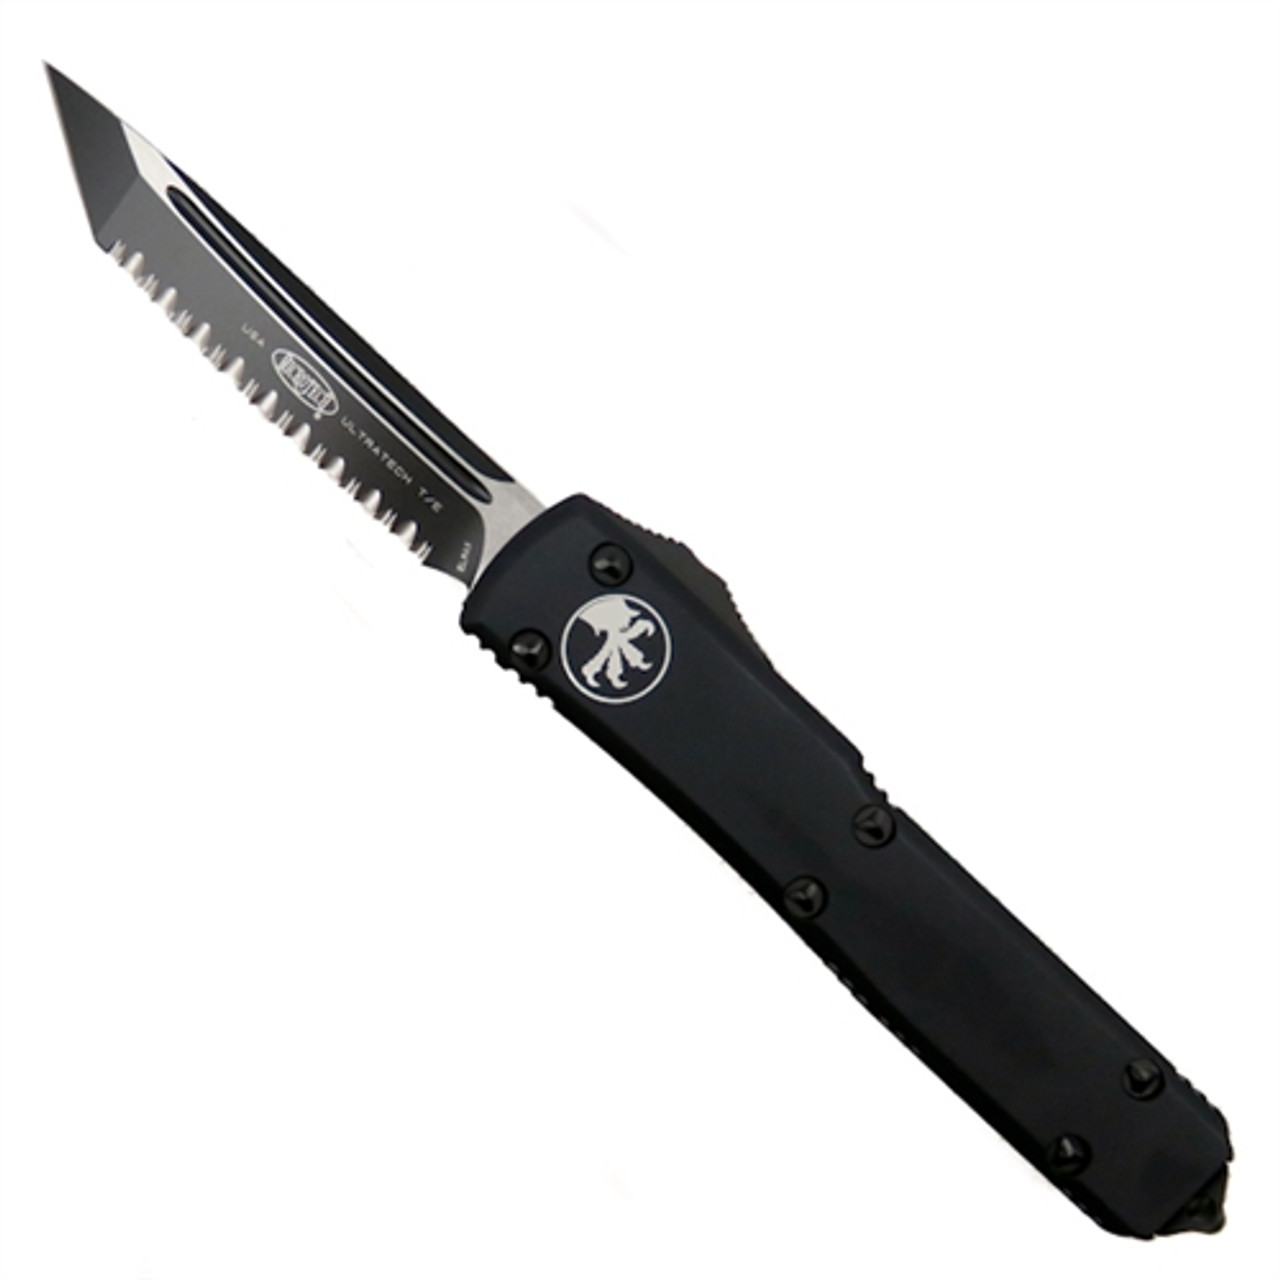 Microtech 123-3TCC Tactical Contoured Ultratech T/E OTF Auto Knife, Full Serrated Black Blade